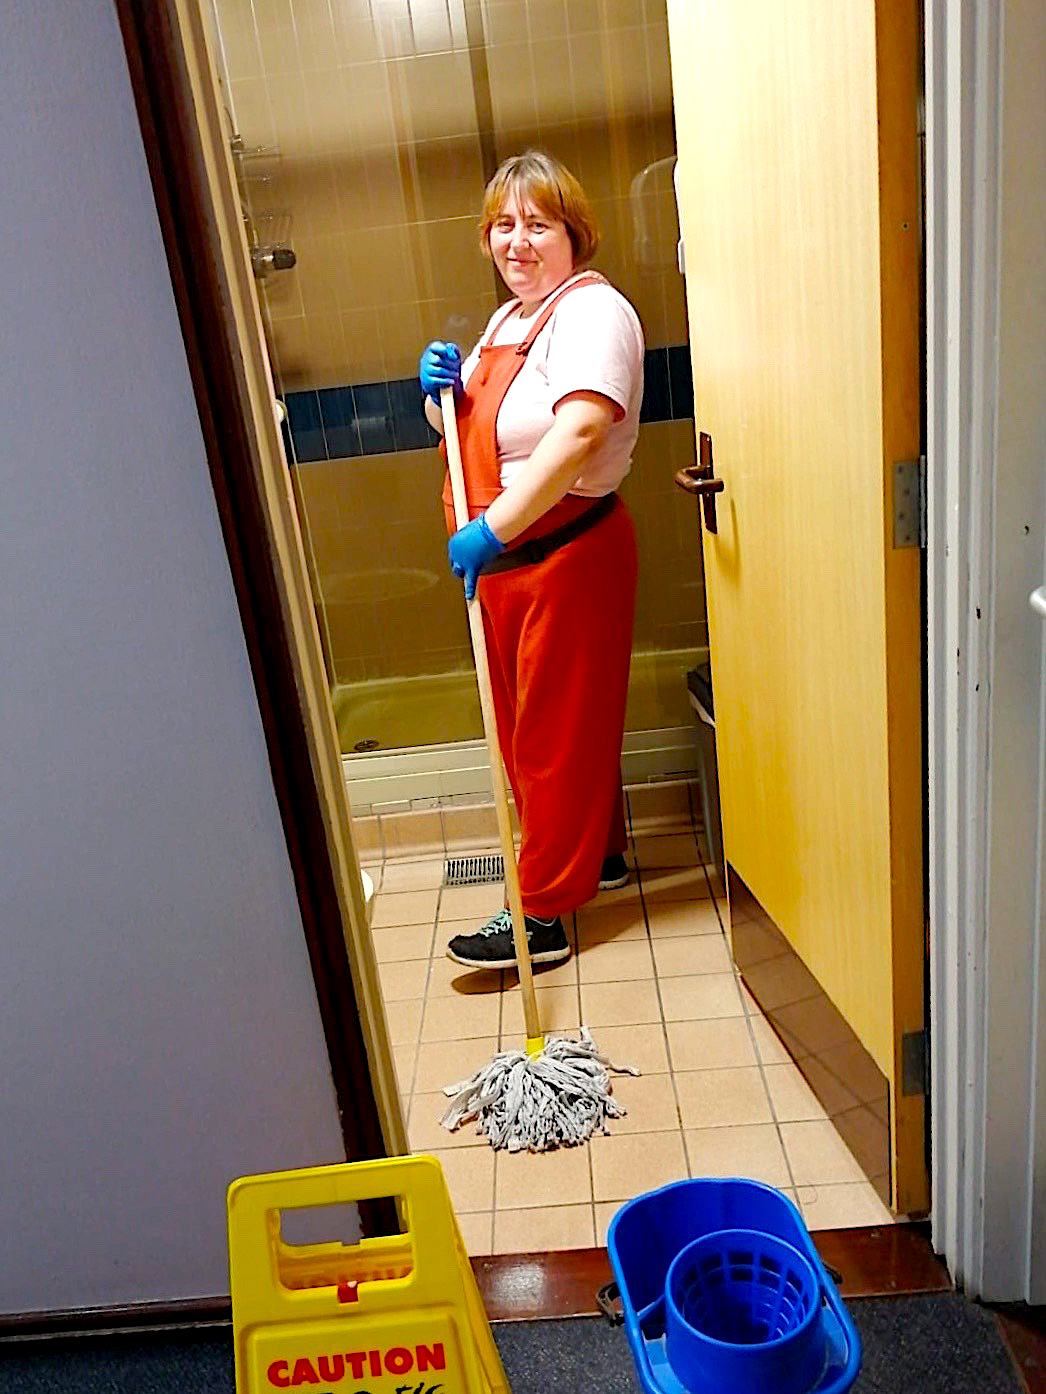 Sarah Griffiths cleaning with a mop